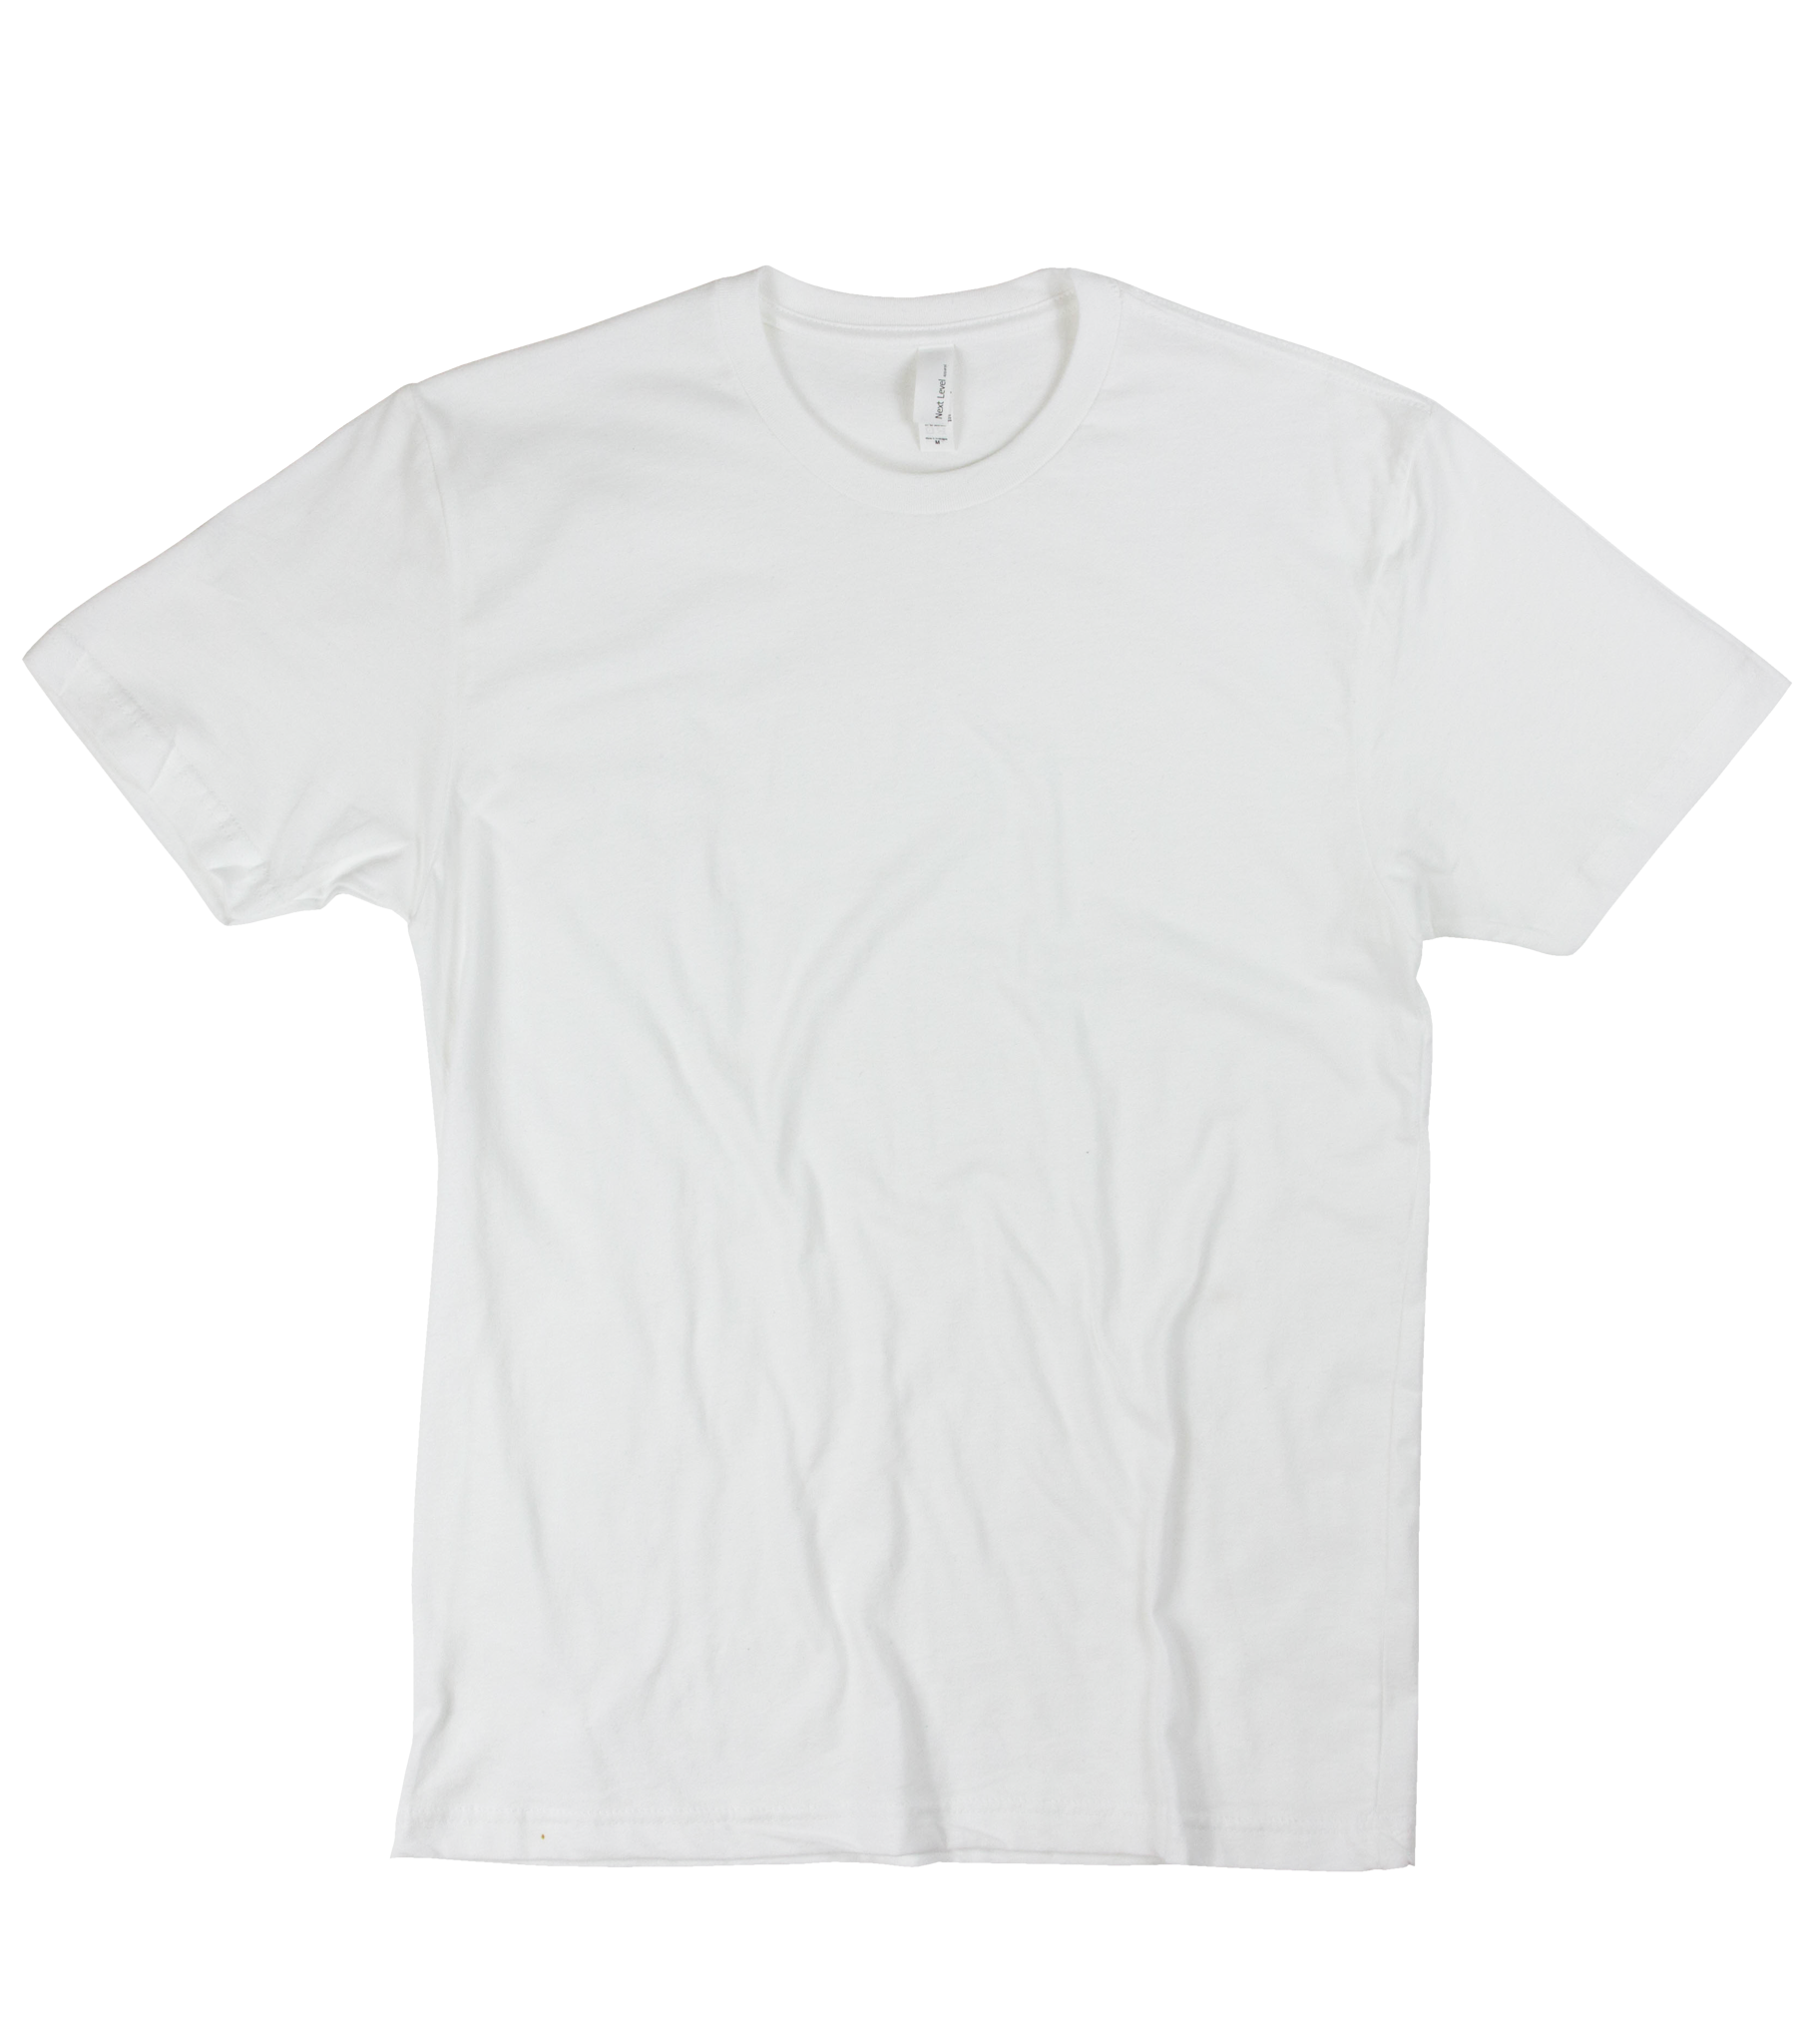 Order Custom American Apparel 502525 T Shirts With Free Shipping